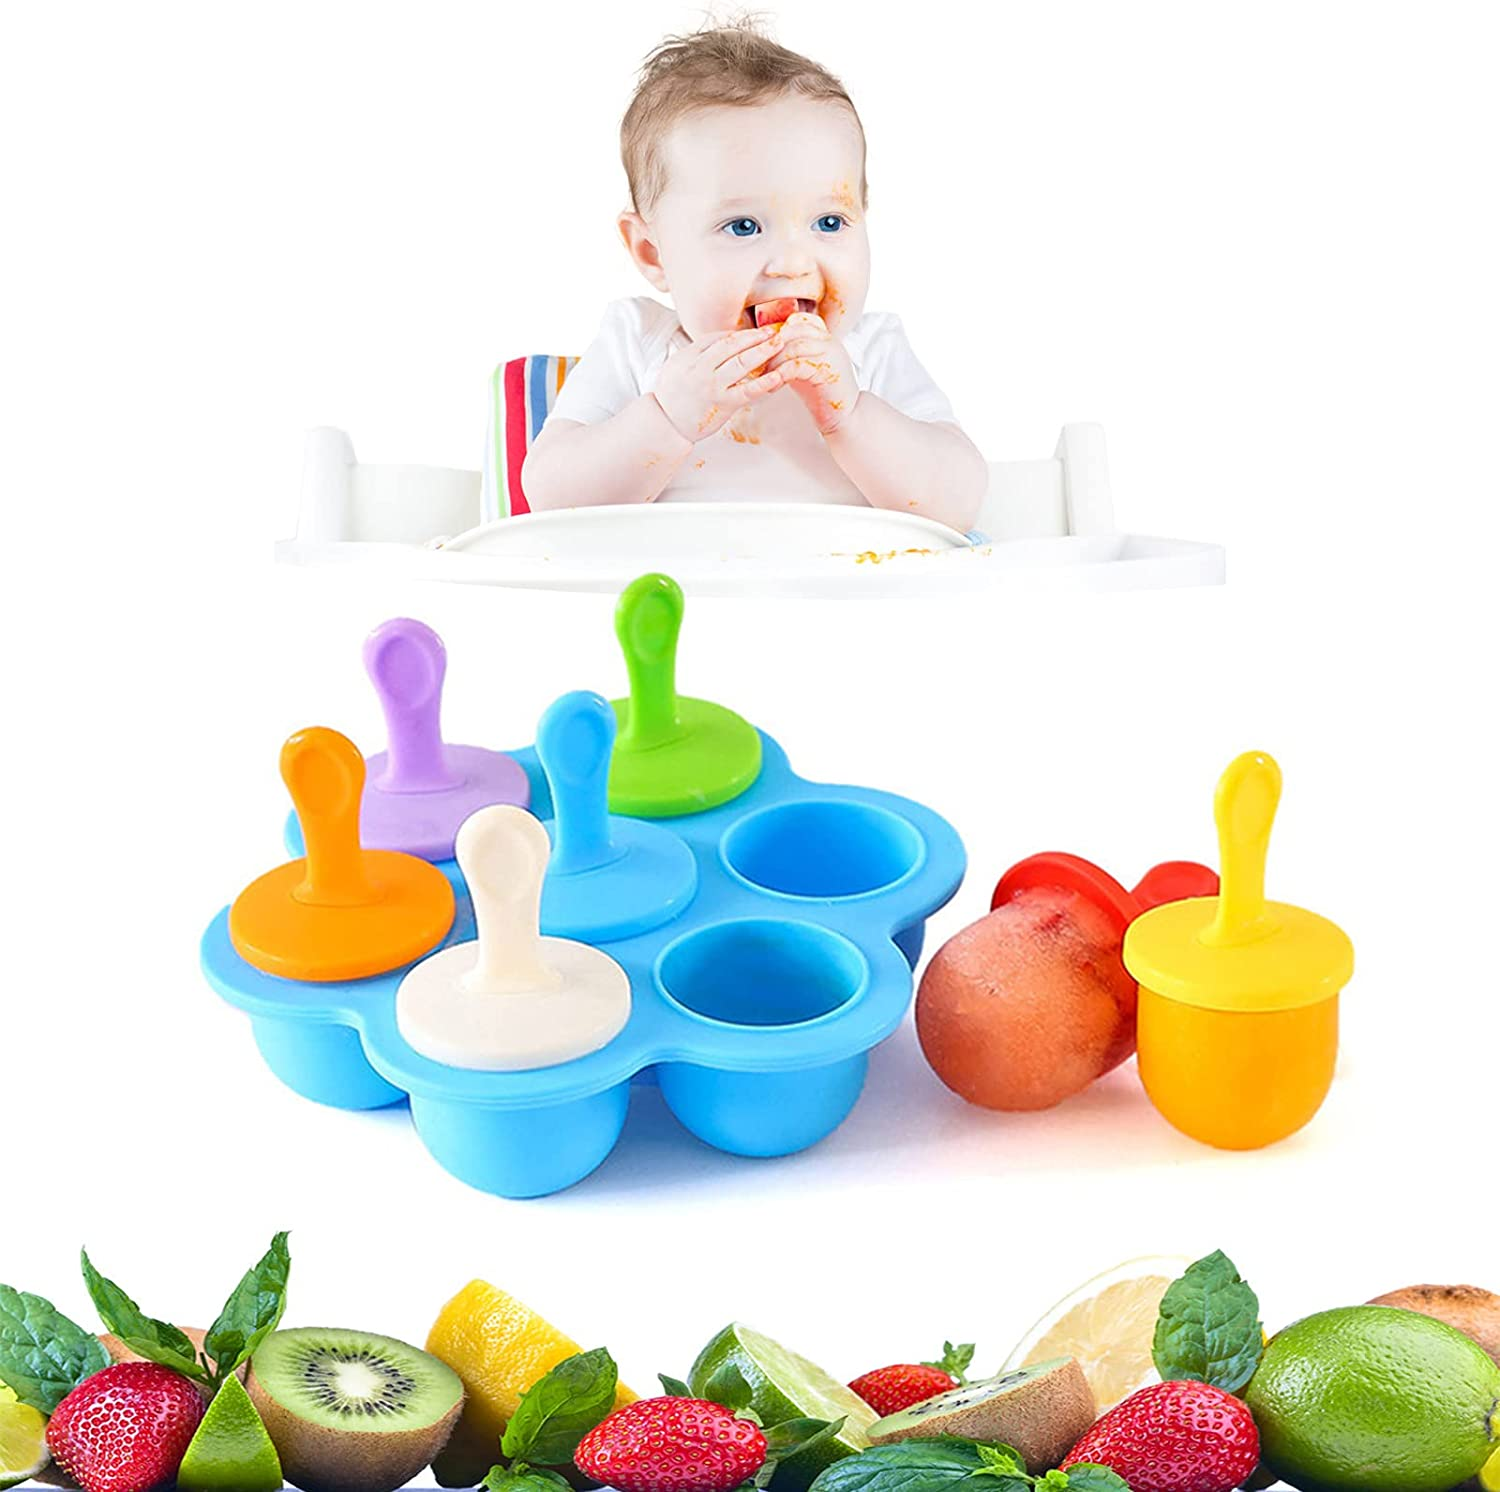 Silicone Popsicle Molds,Mini 7-cavity DIY Ice Popsicle Molds,Non-Stick Popsicle Makers,Food Grade Popsicle Molds as Baby Food Freezer Trays,Baby Popsicle Food Storage Container